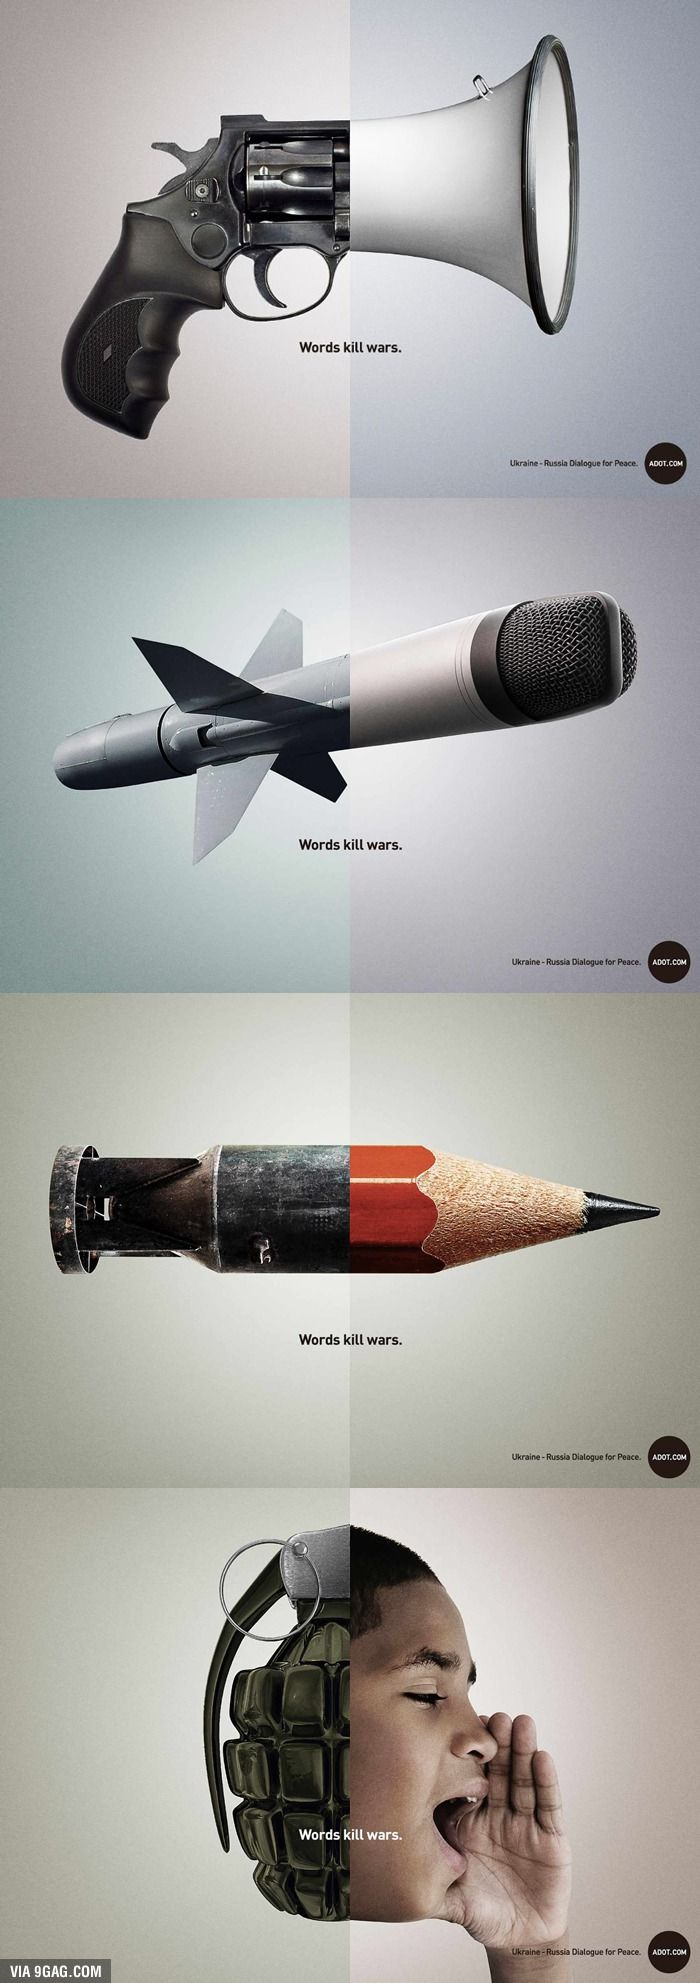 This #ad promotes talking about issues instead of resorting to violence. It transforms weapons into tools that are used to speak. #advertising